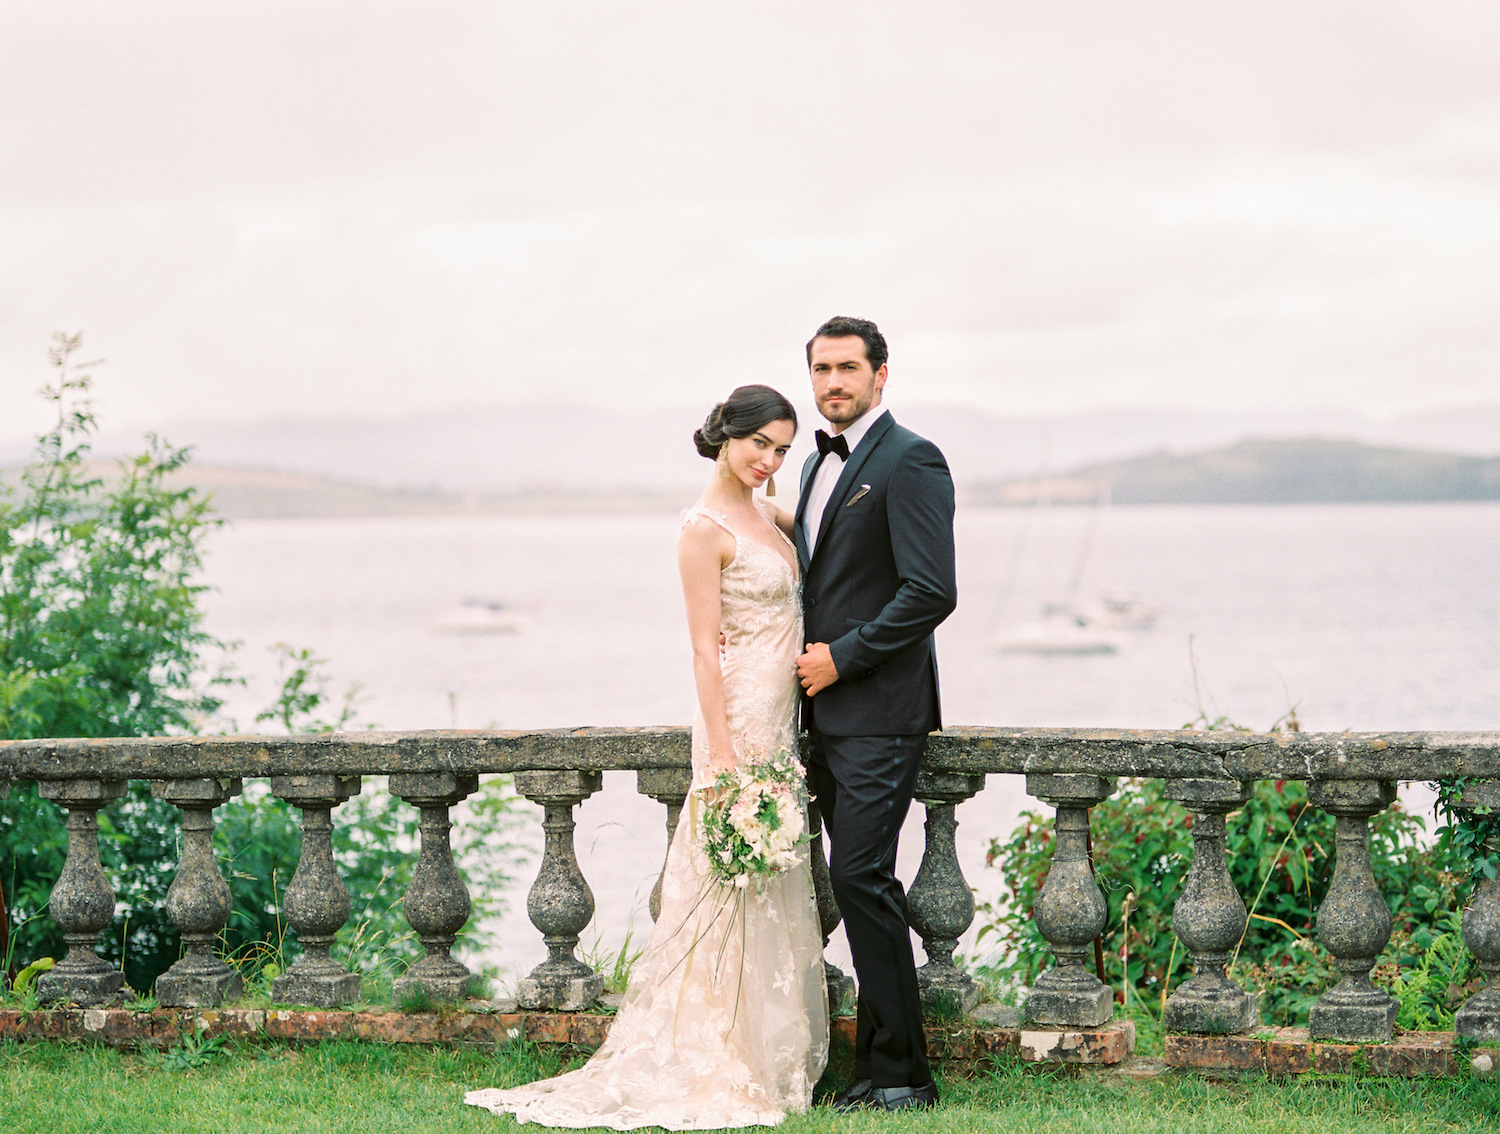 Why Hire a Wedding Planner in Ireland?